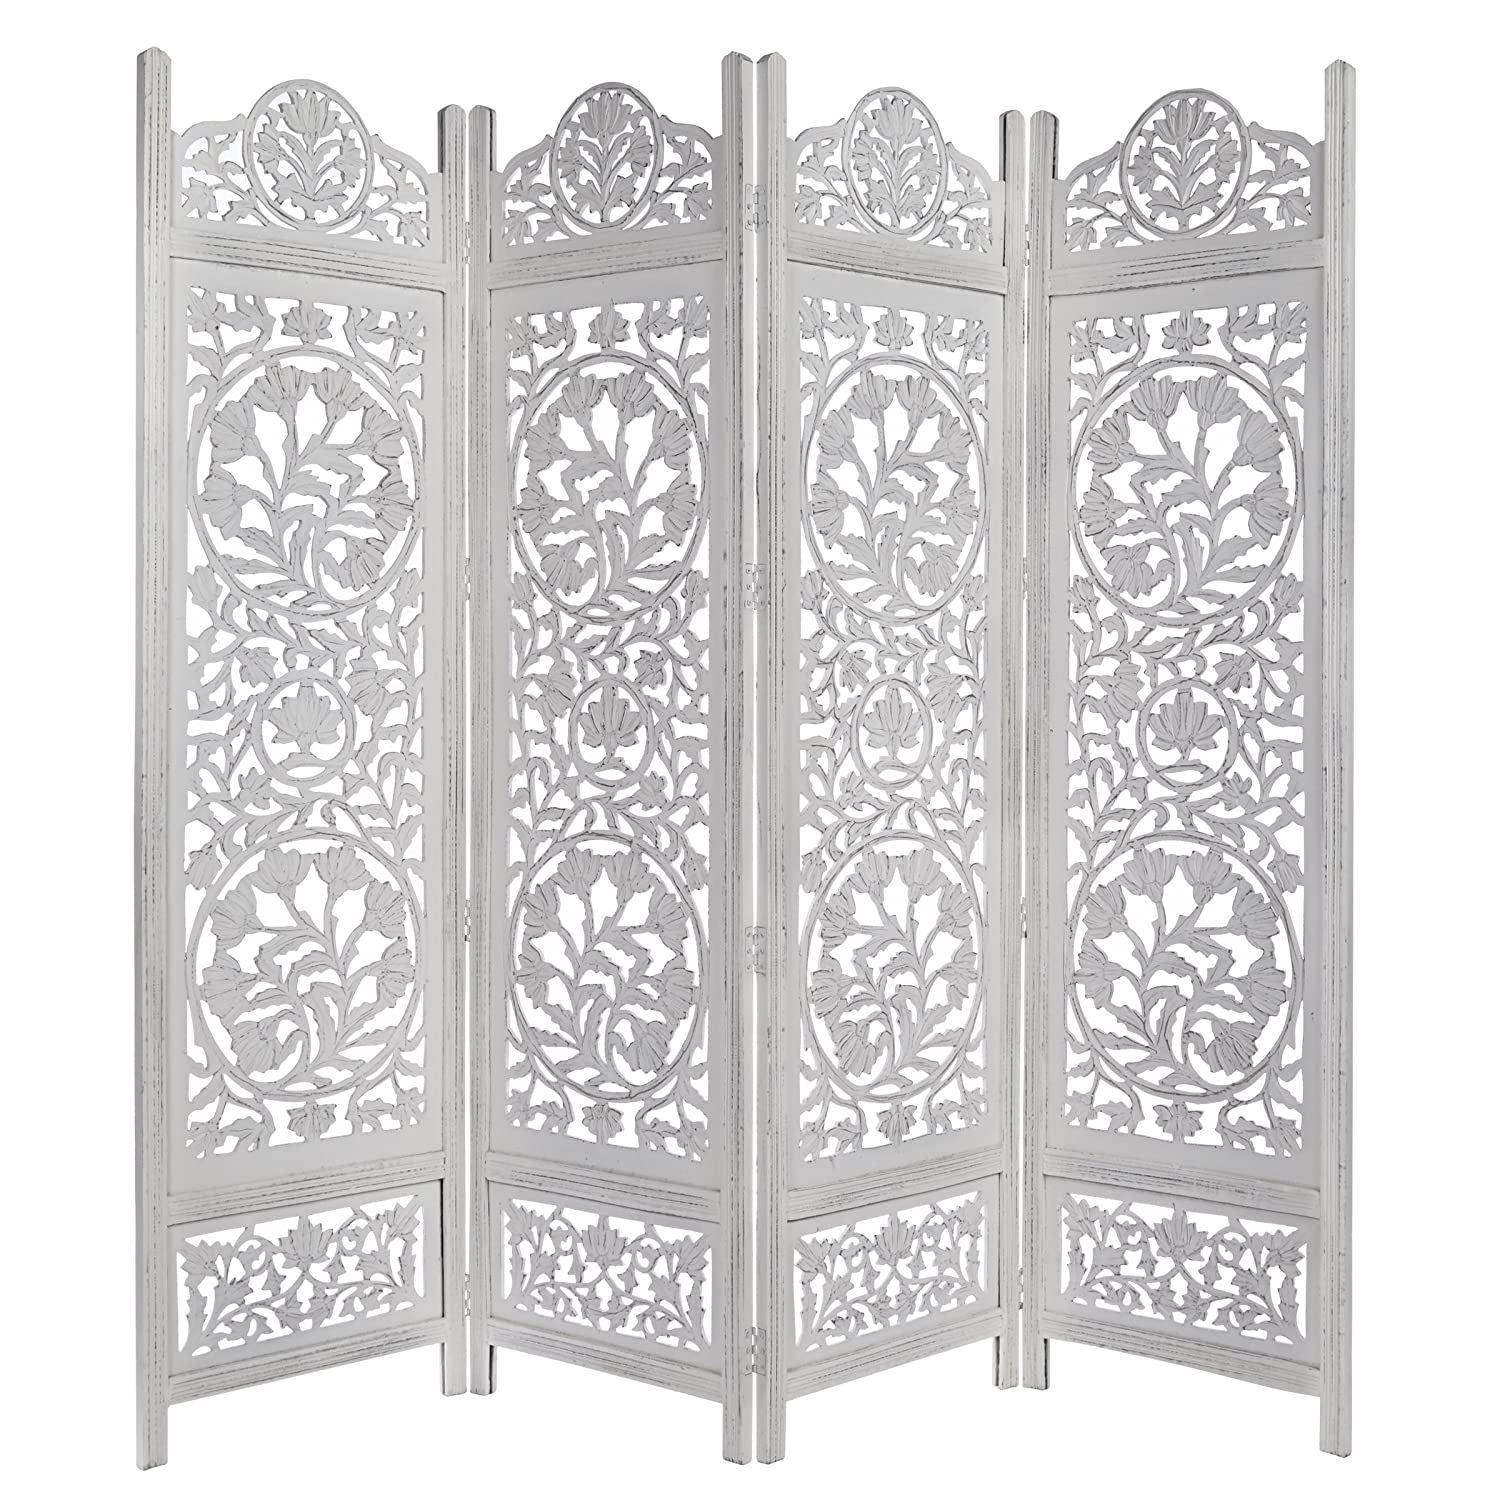 Indoor Privacy Screen Living Room Furniture Amazoncom Kamal The Lotus Antique White 4 Panel Handcrafted Wood